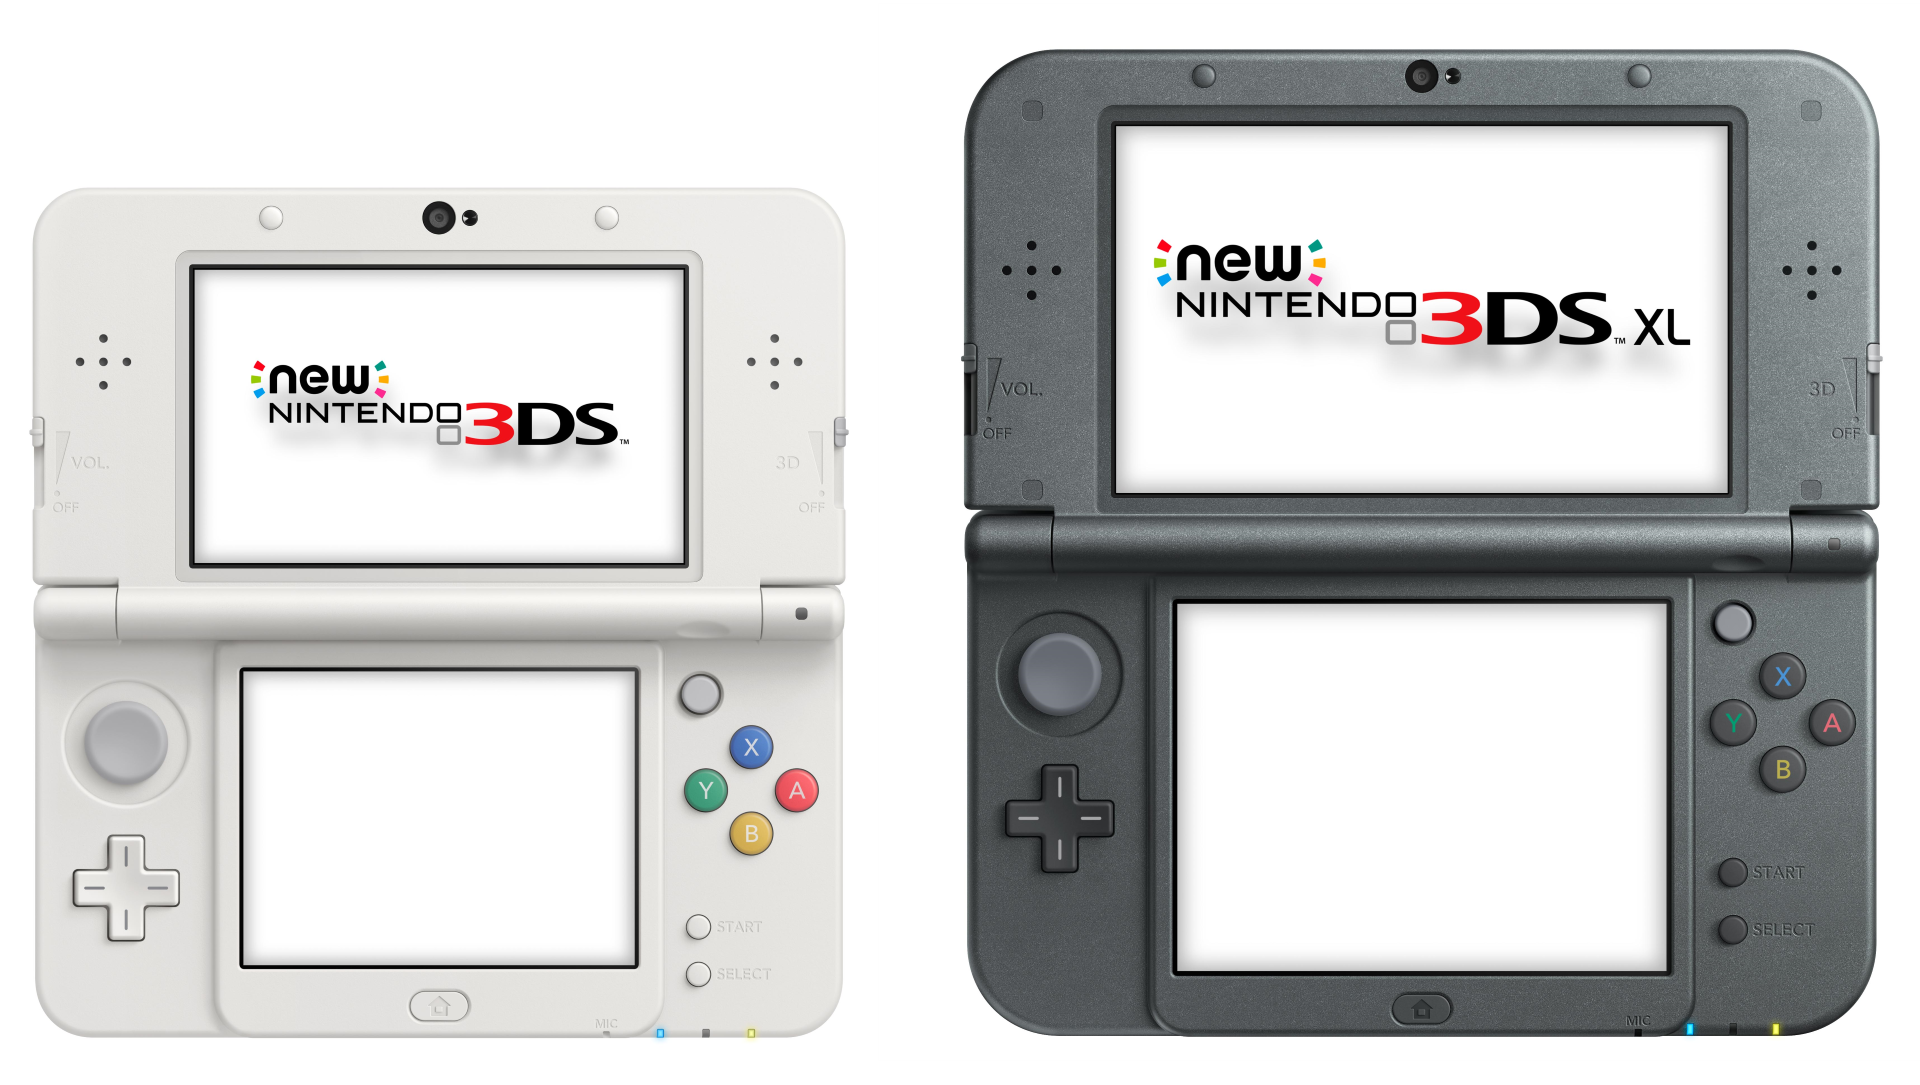 New 3DS vs New 3DS XL - what's the difference? | Expert Reviews